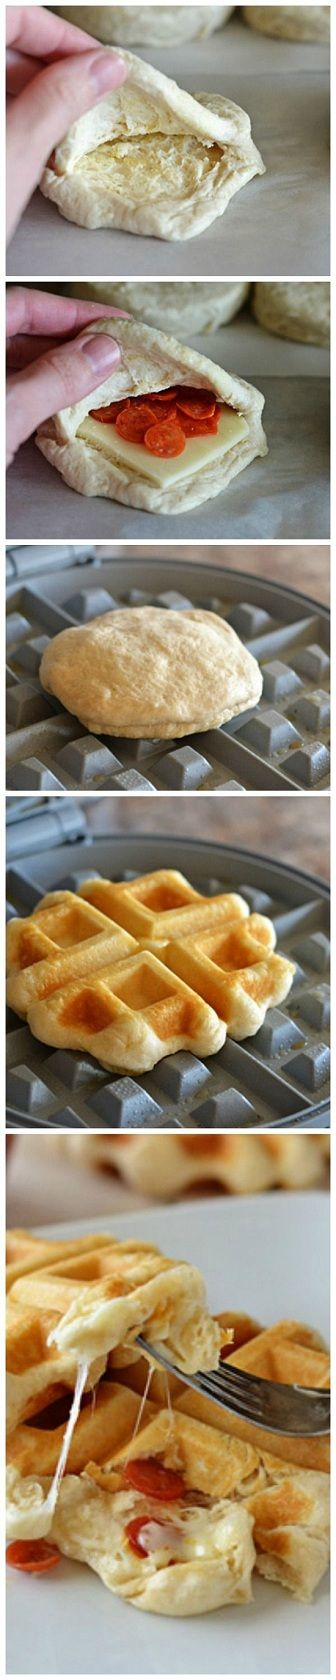 Easy Pizza Waffles Recipe.